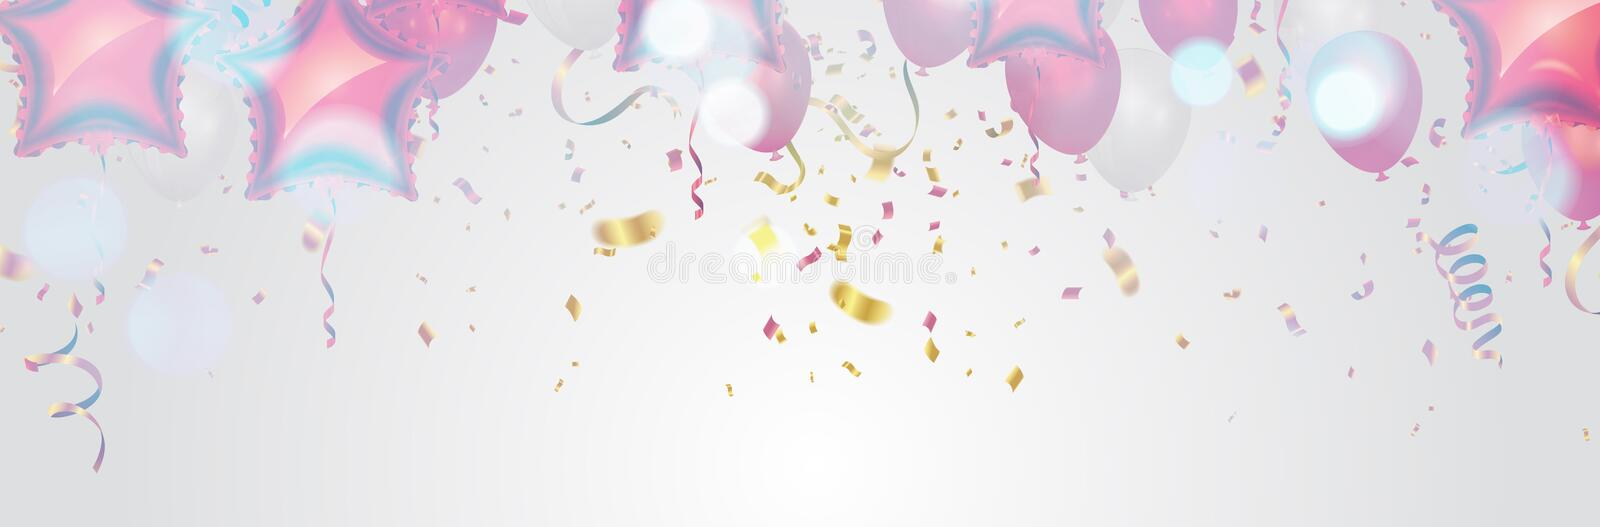 Festive poster with balloons and serpentine. Holiday decoration Vector background vector illustration